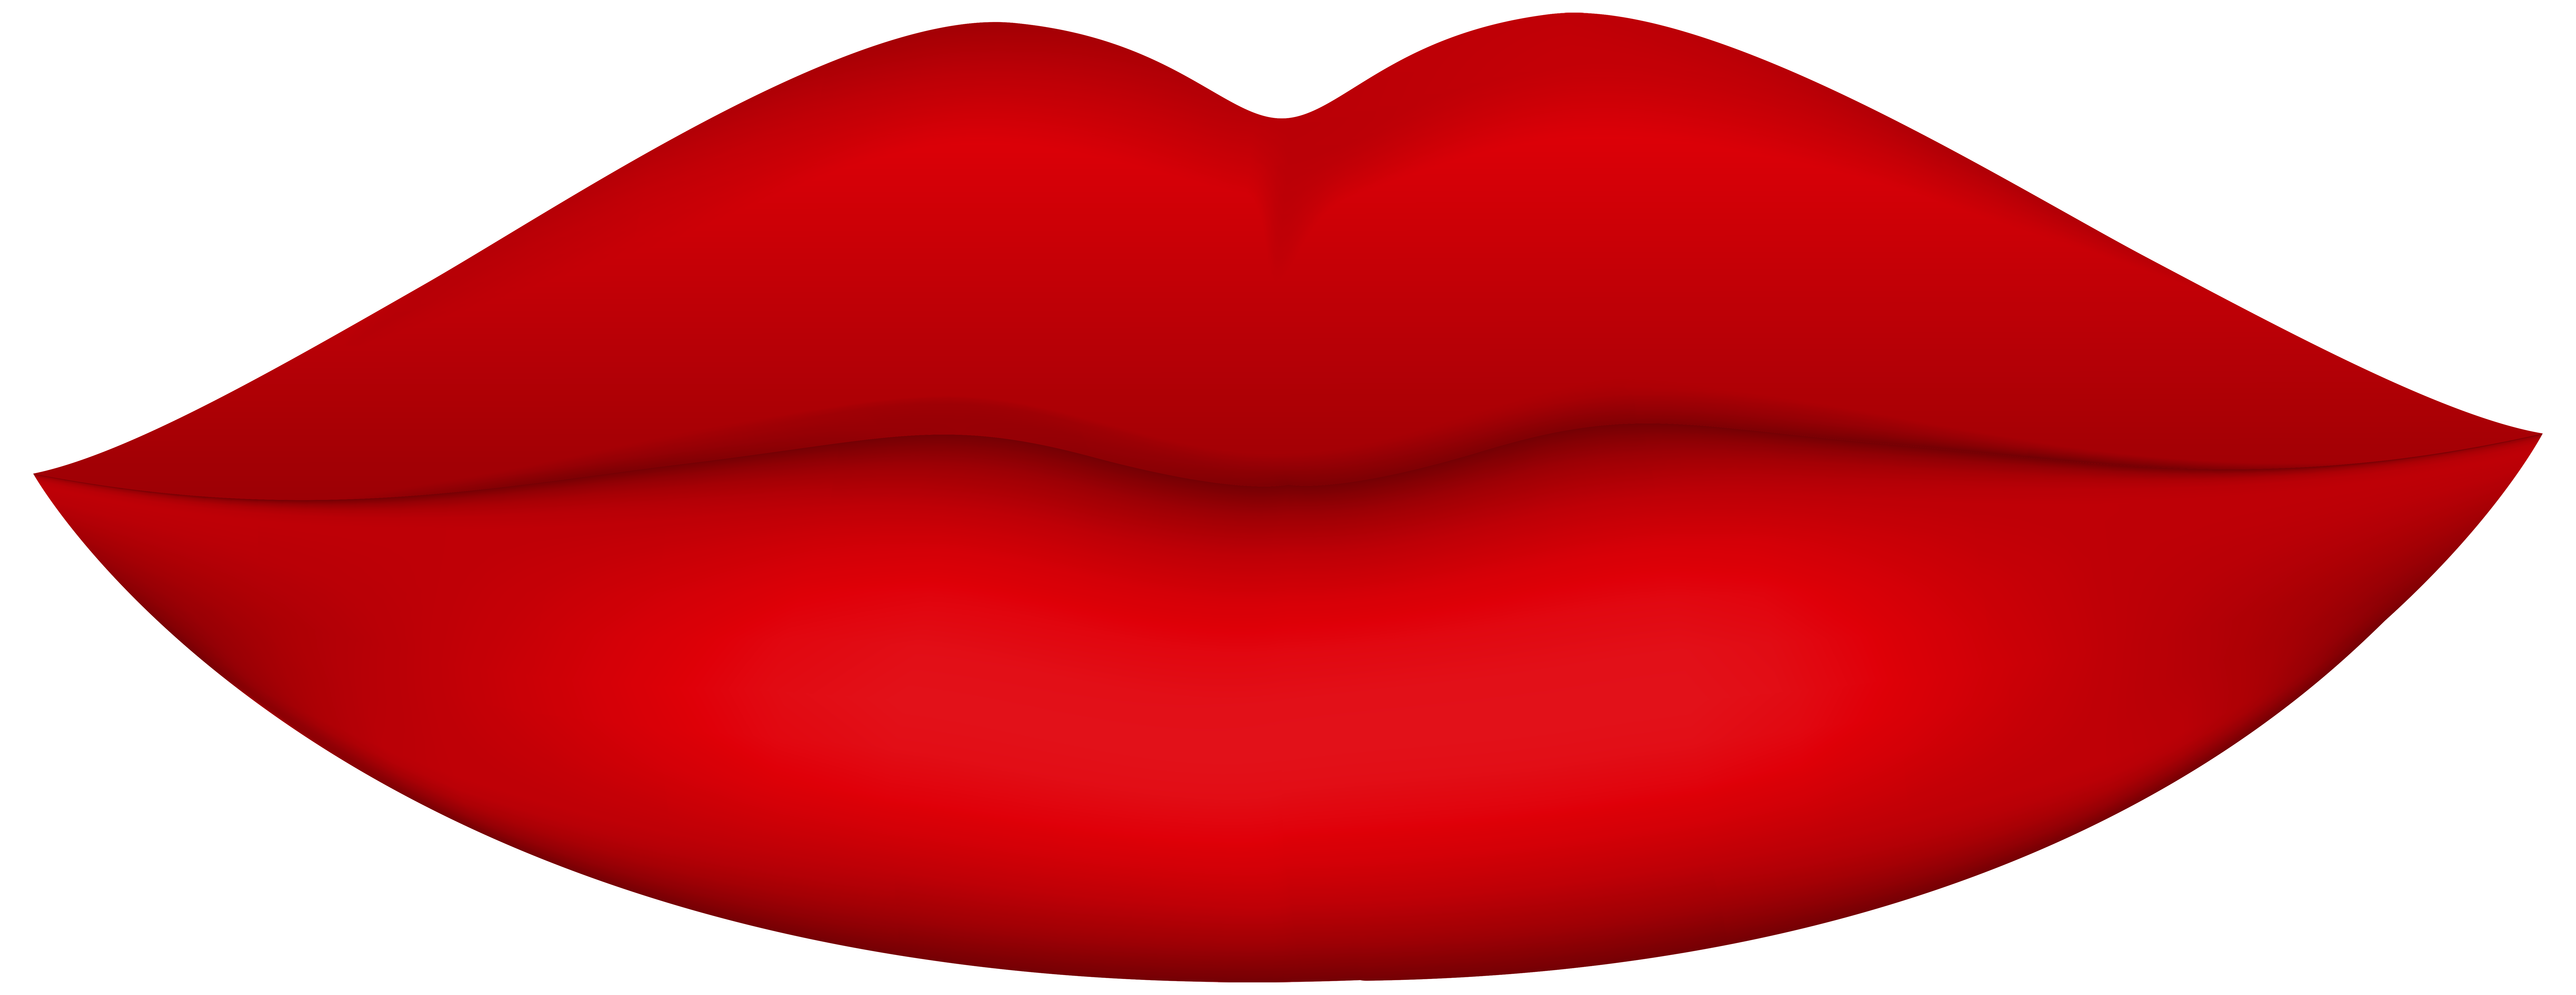 Red Lips PNG Clip Art-Red Lips PNG Clip Art-5